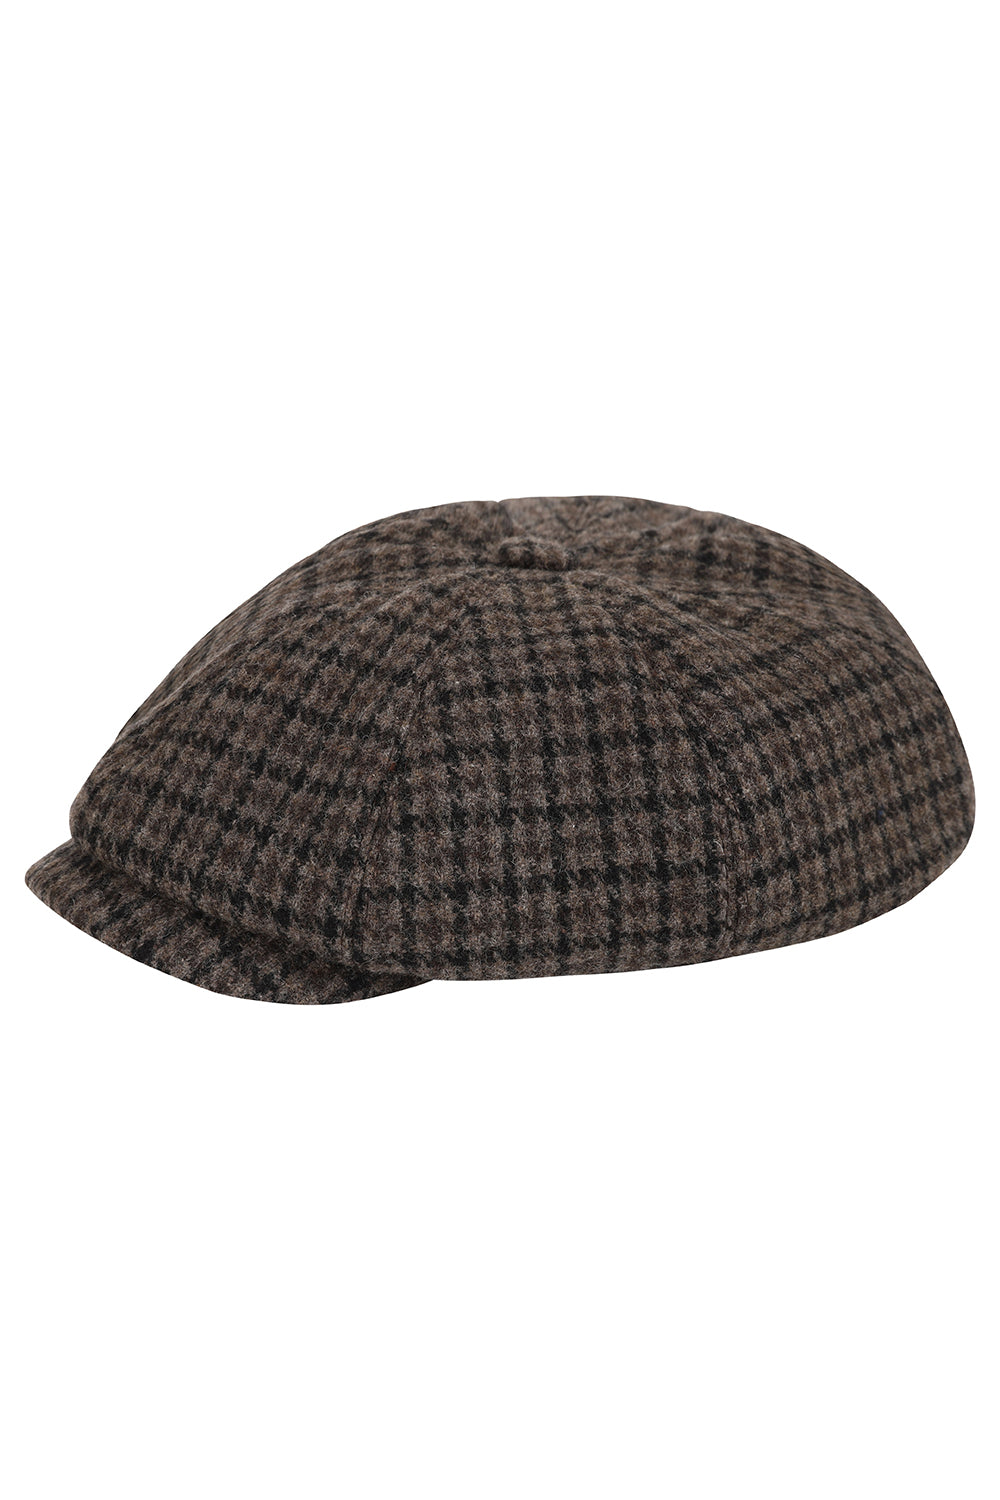 Wide Baker Boy Hat - Brown Houndstooth Wool